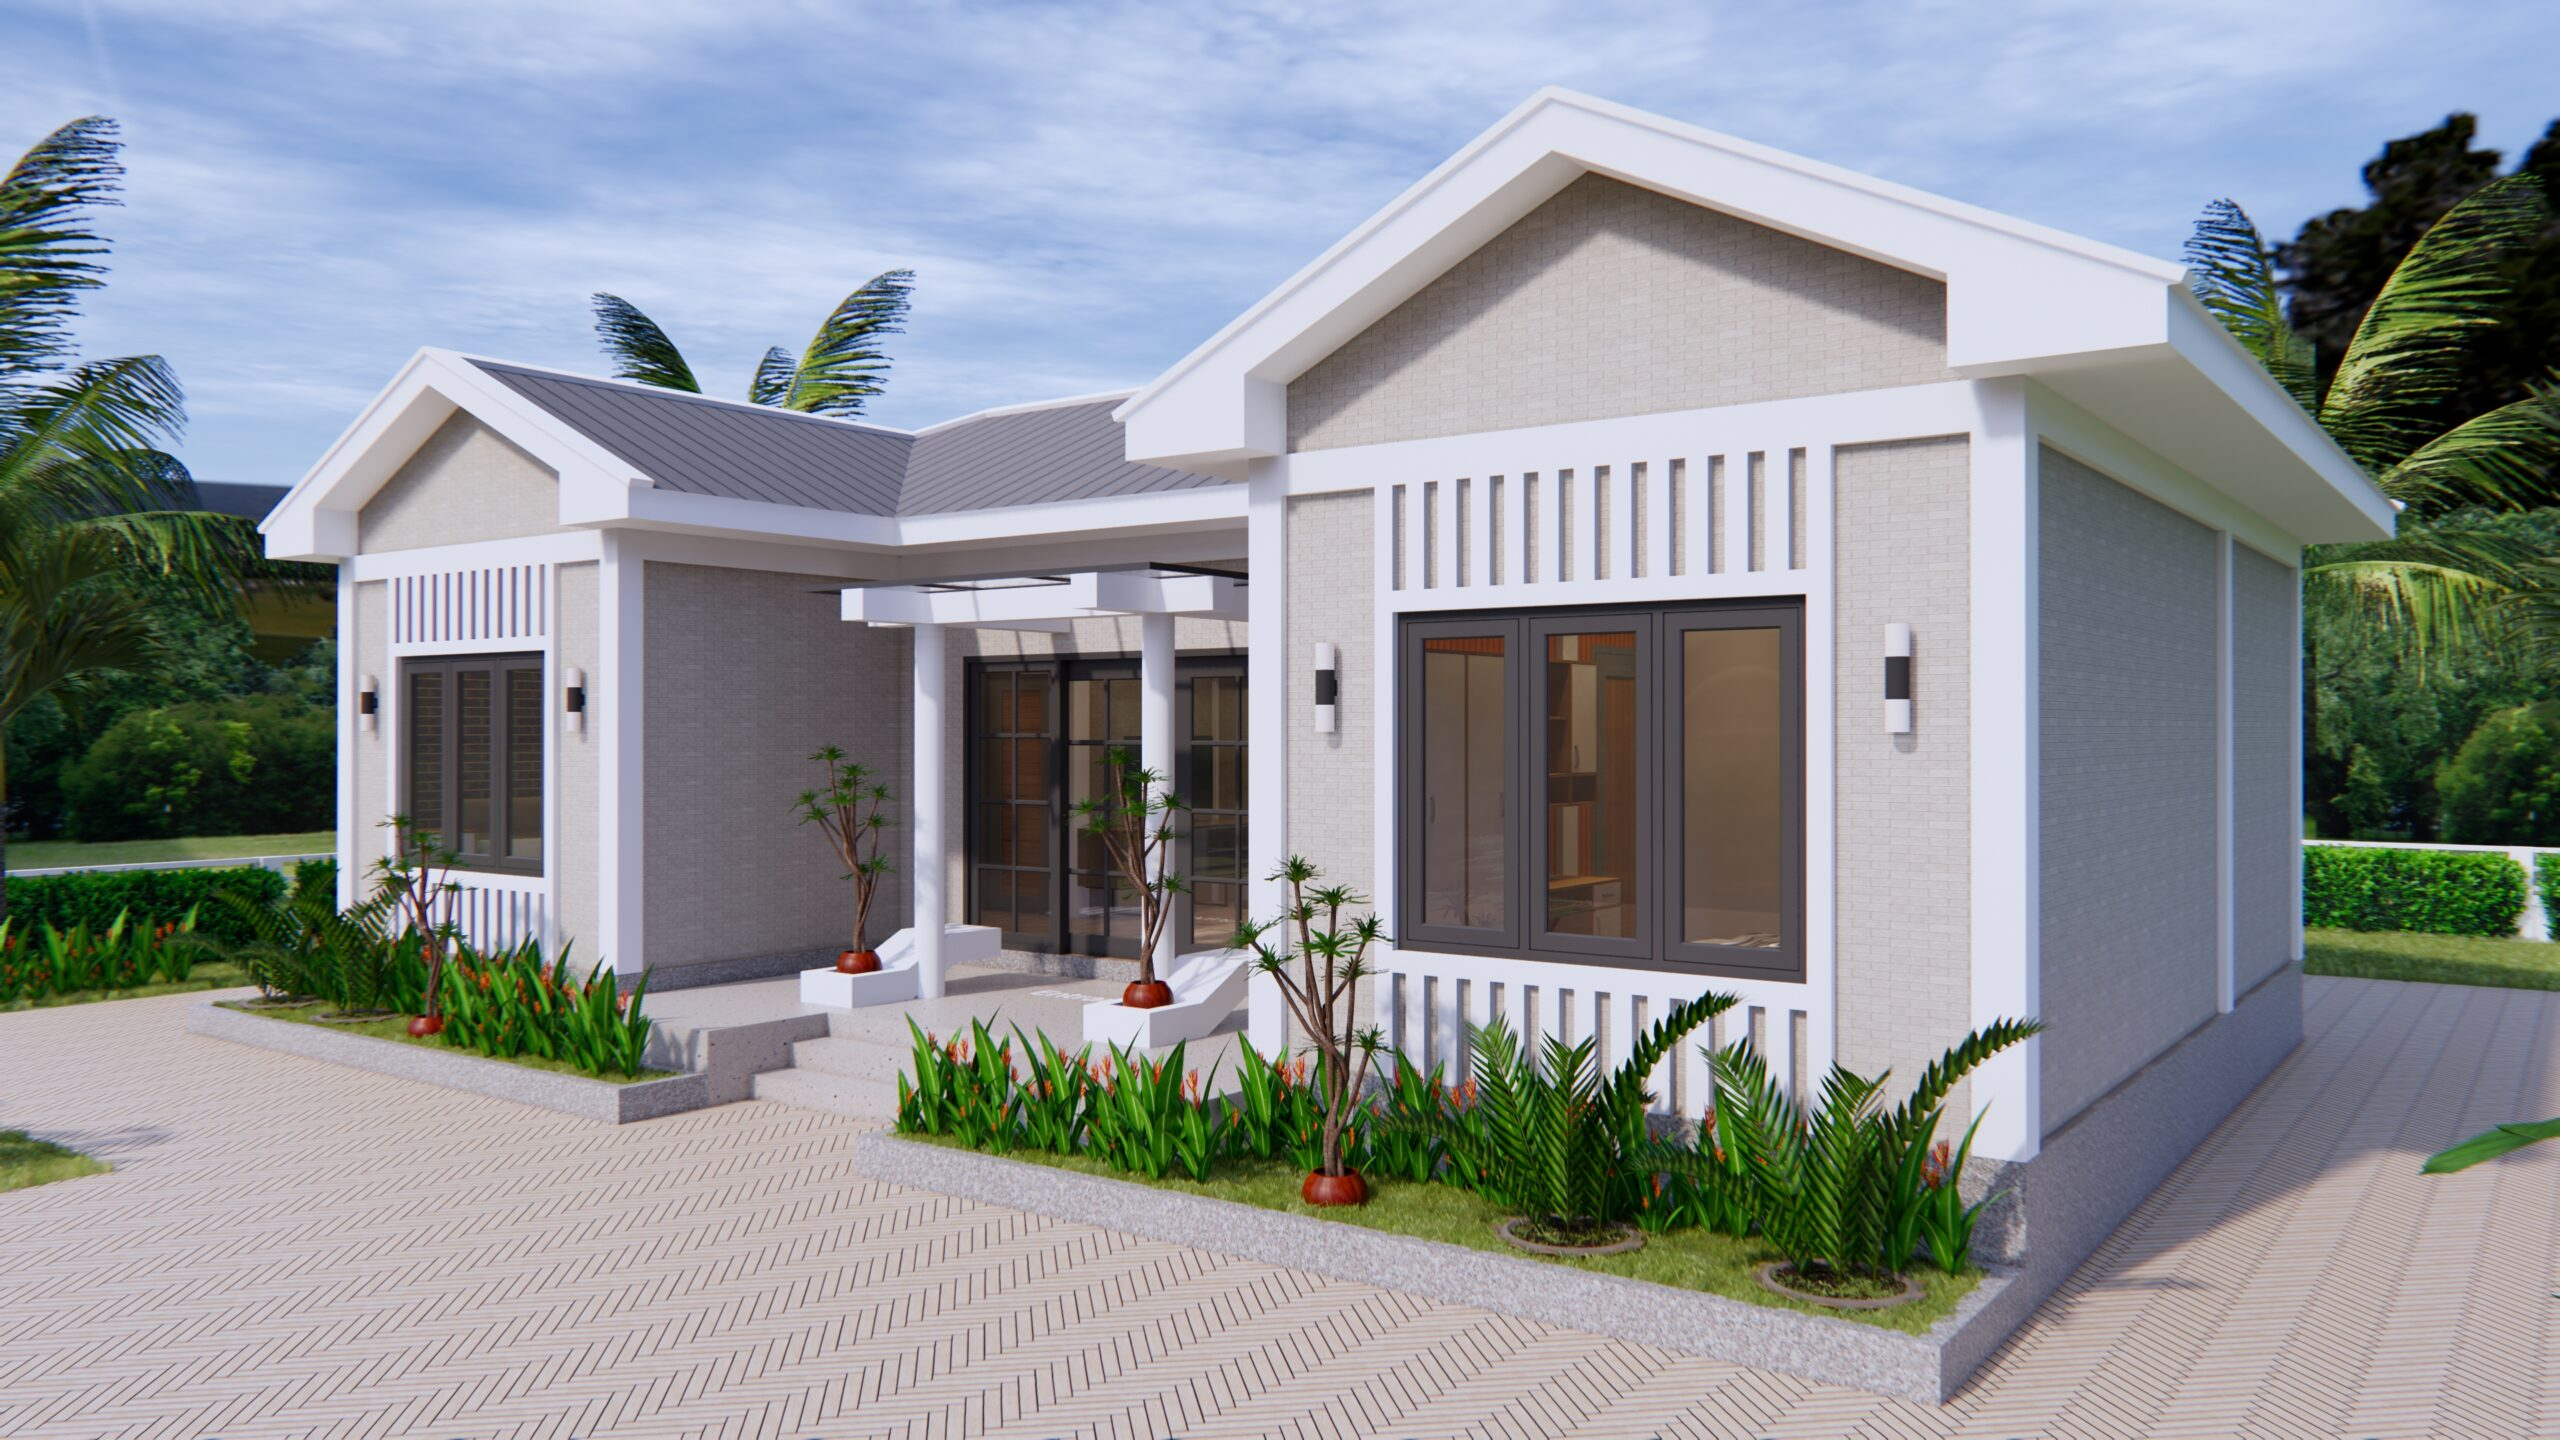 Modern Architecture Homes 13x7.5 Meter 43x25 Feet 3 Beds 4